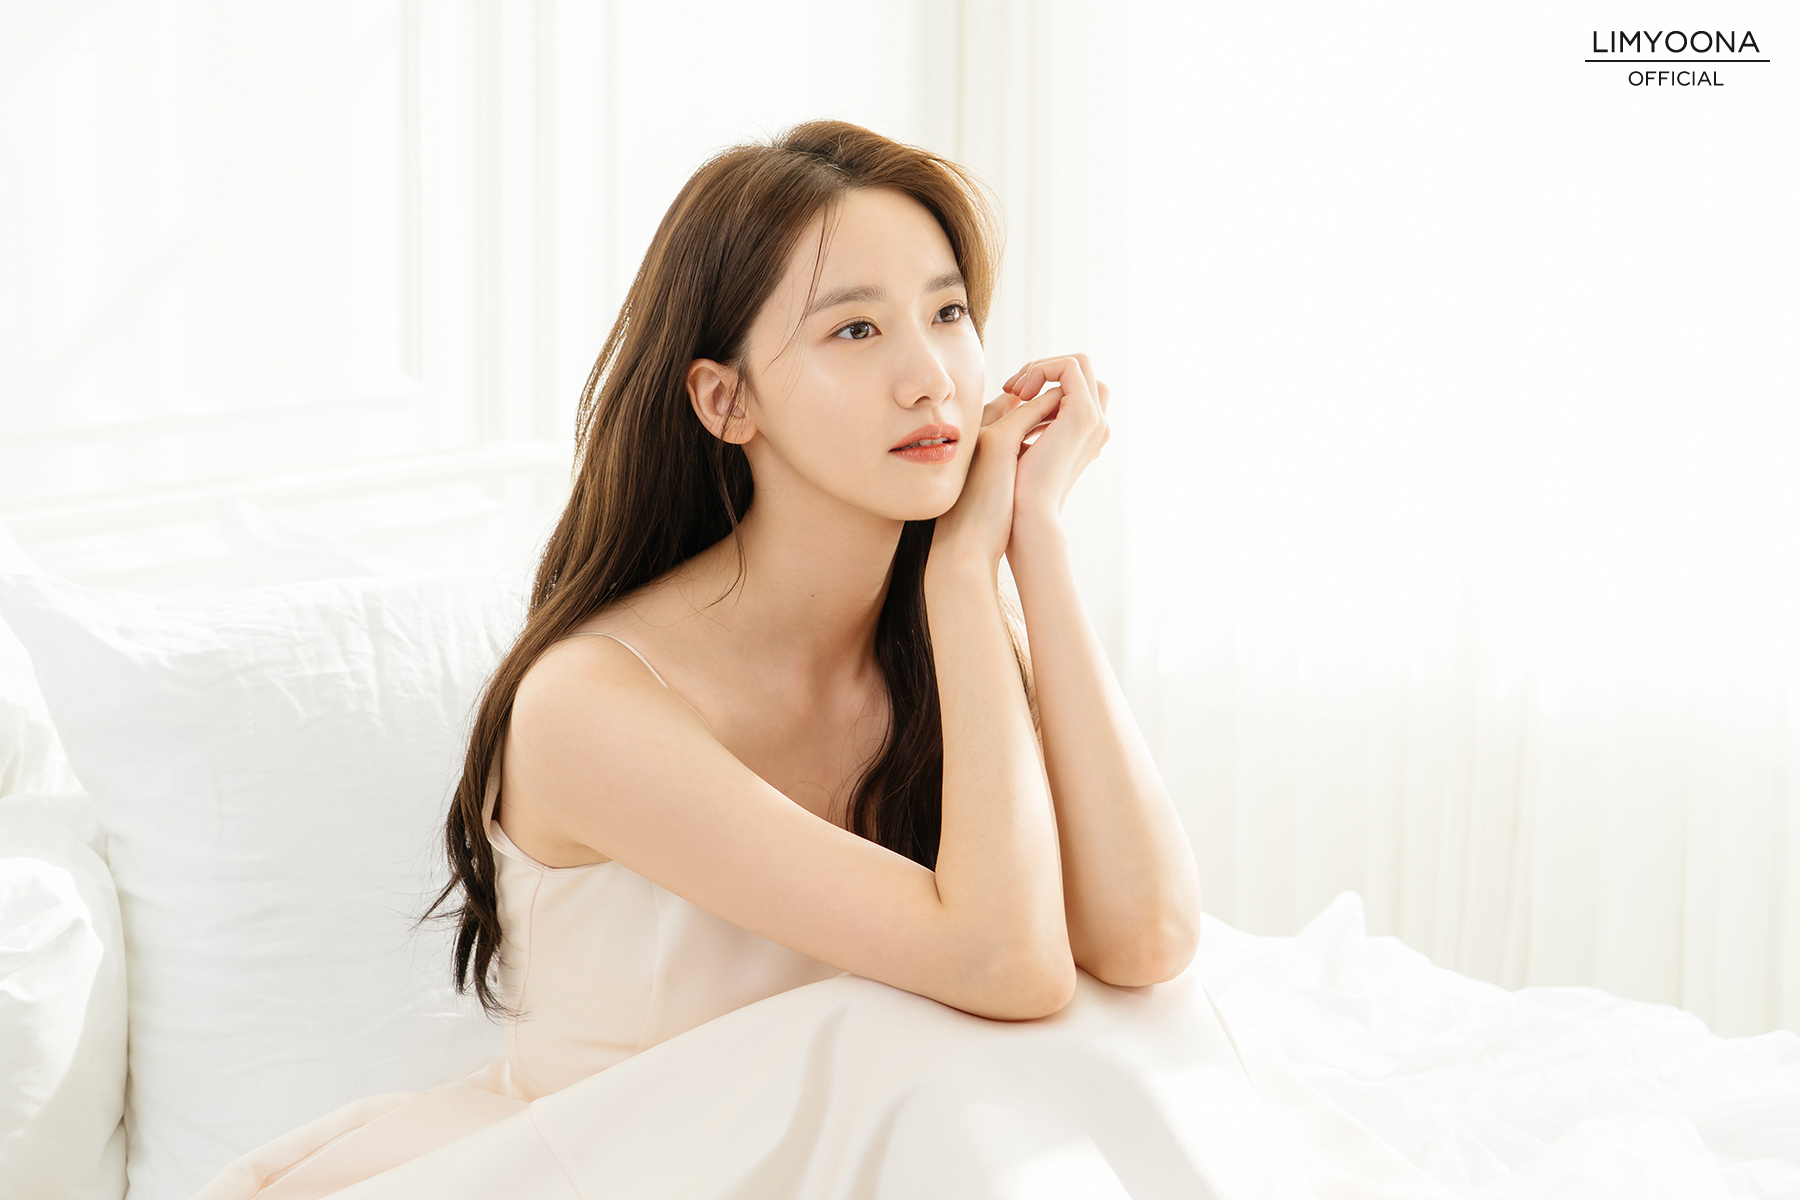 Yoona – 2020 December, Marie Claire Magazine